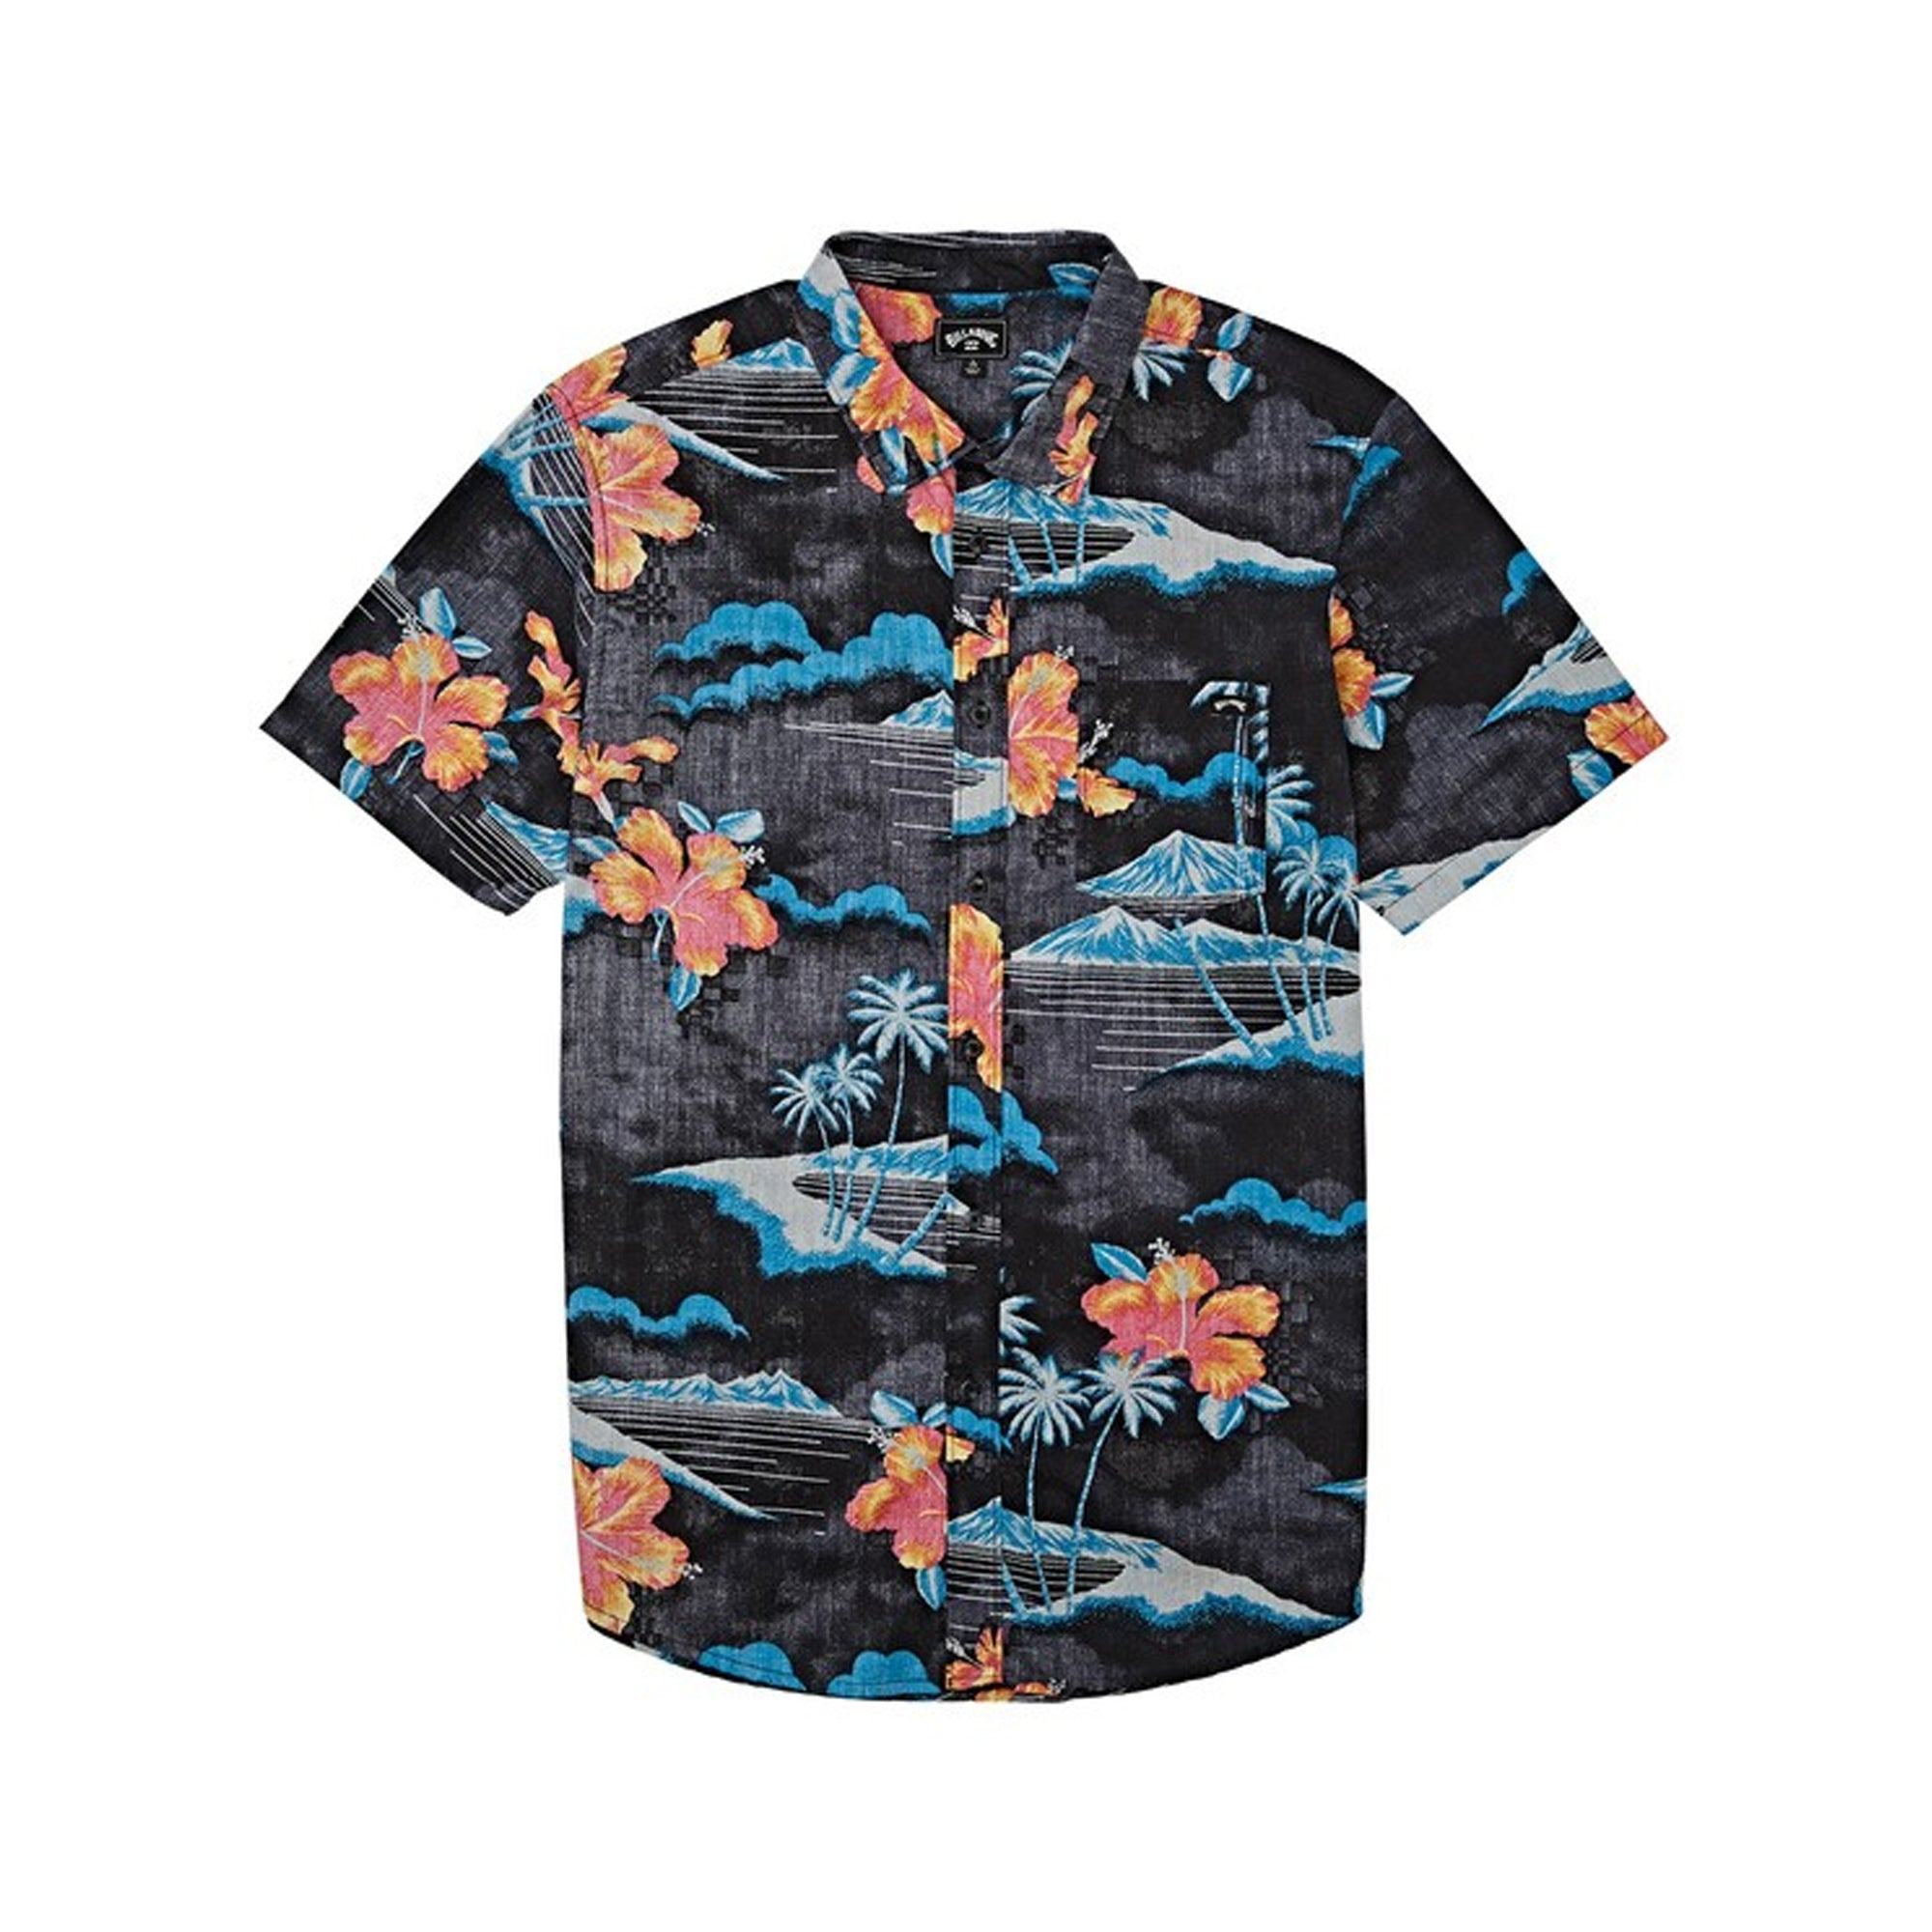 Billabong Sundays Floral Men's S/S Dress Shirt